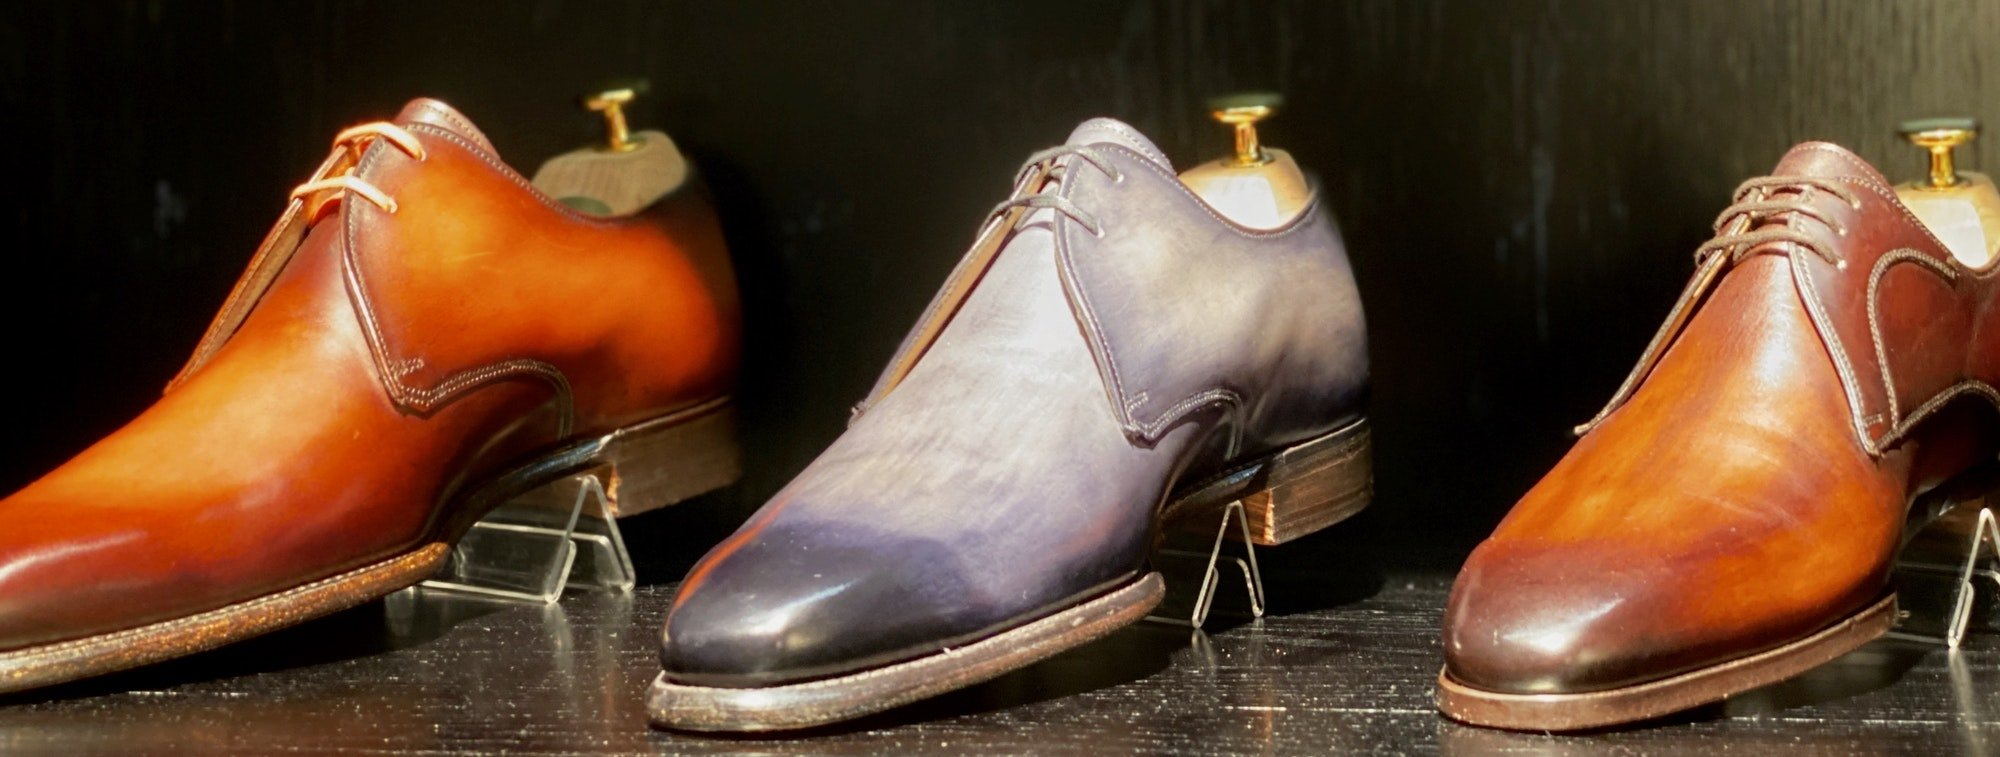 Italian Leather Patina Shoes for Men